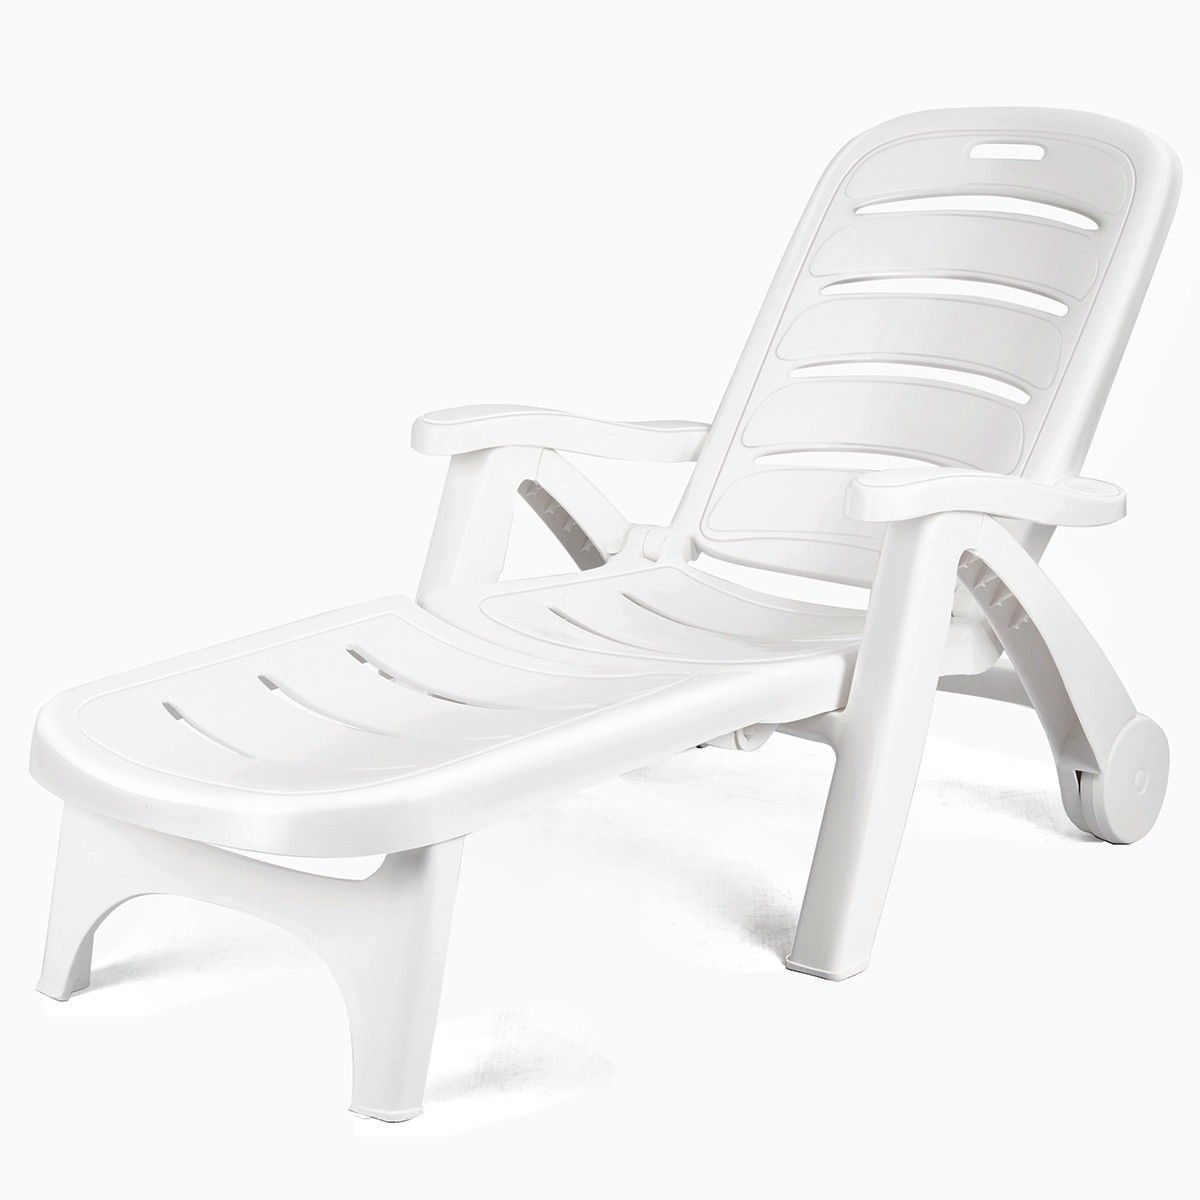 5 position adjustable patio recliner chair with wheels in